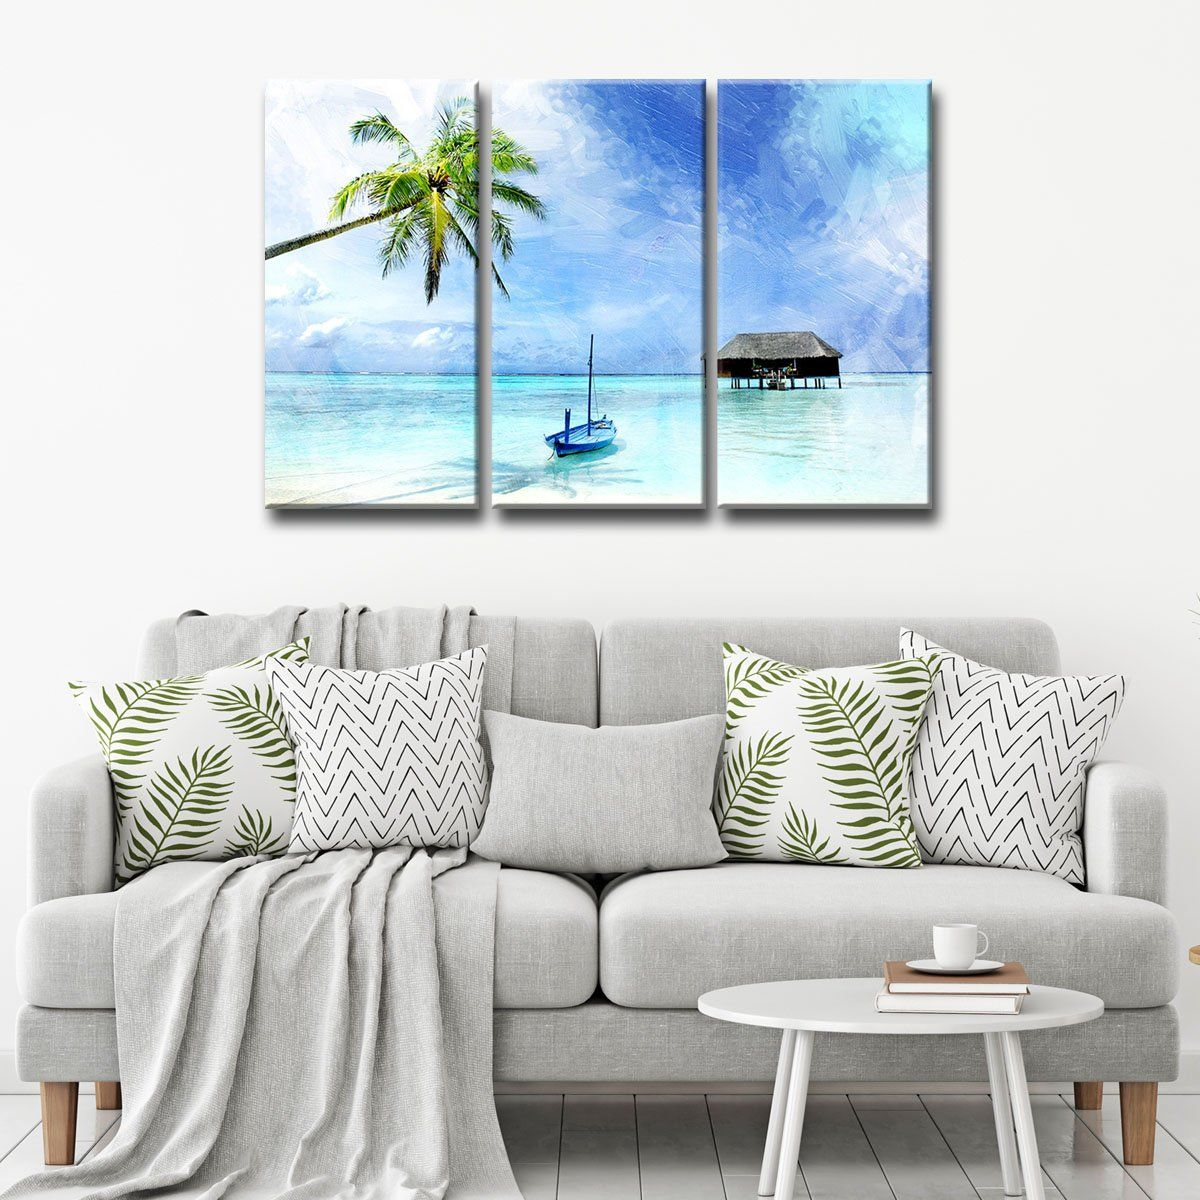 Tropicalu canvas wall art piece set canvases and art pieces